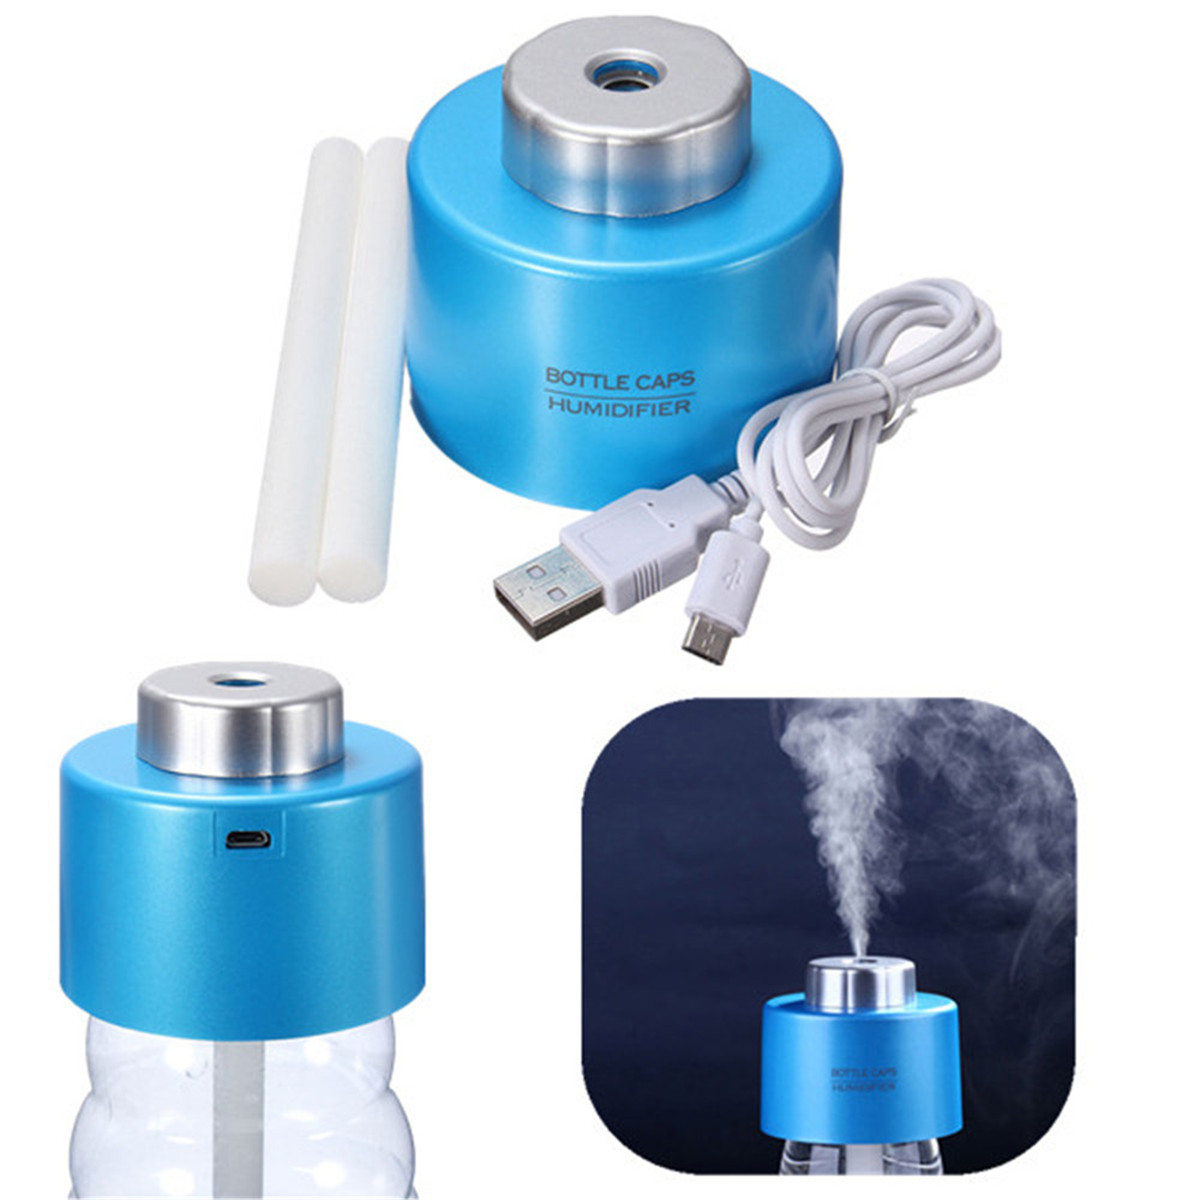 Portable Mini Water Bottle Caps USB Humidifier Aroma Air Diffuser Mist  #1385B8